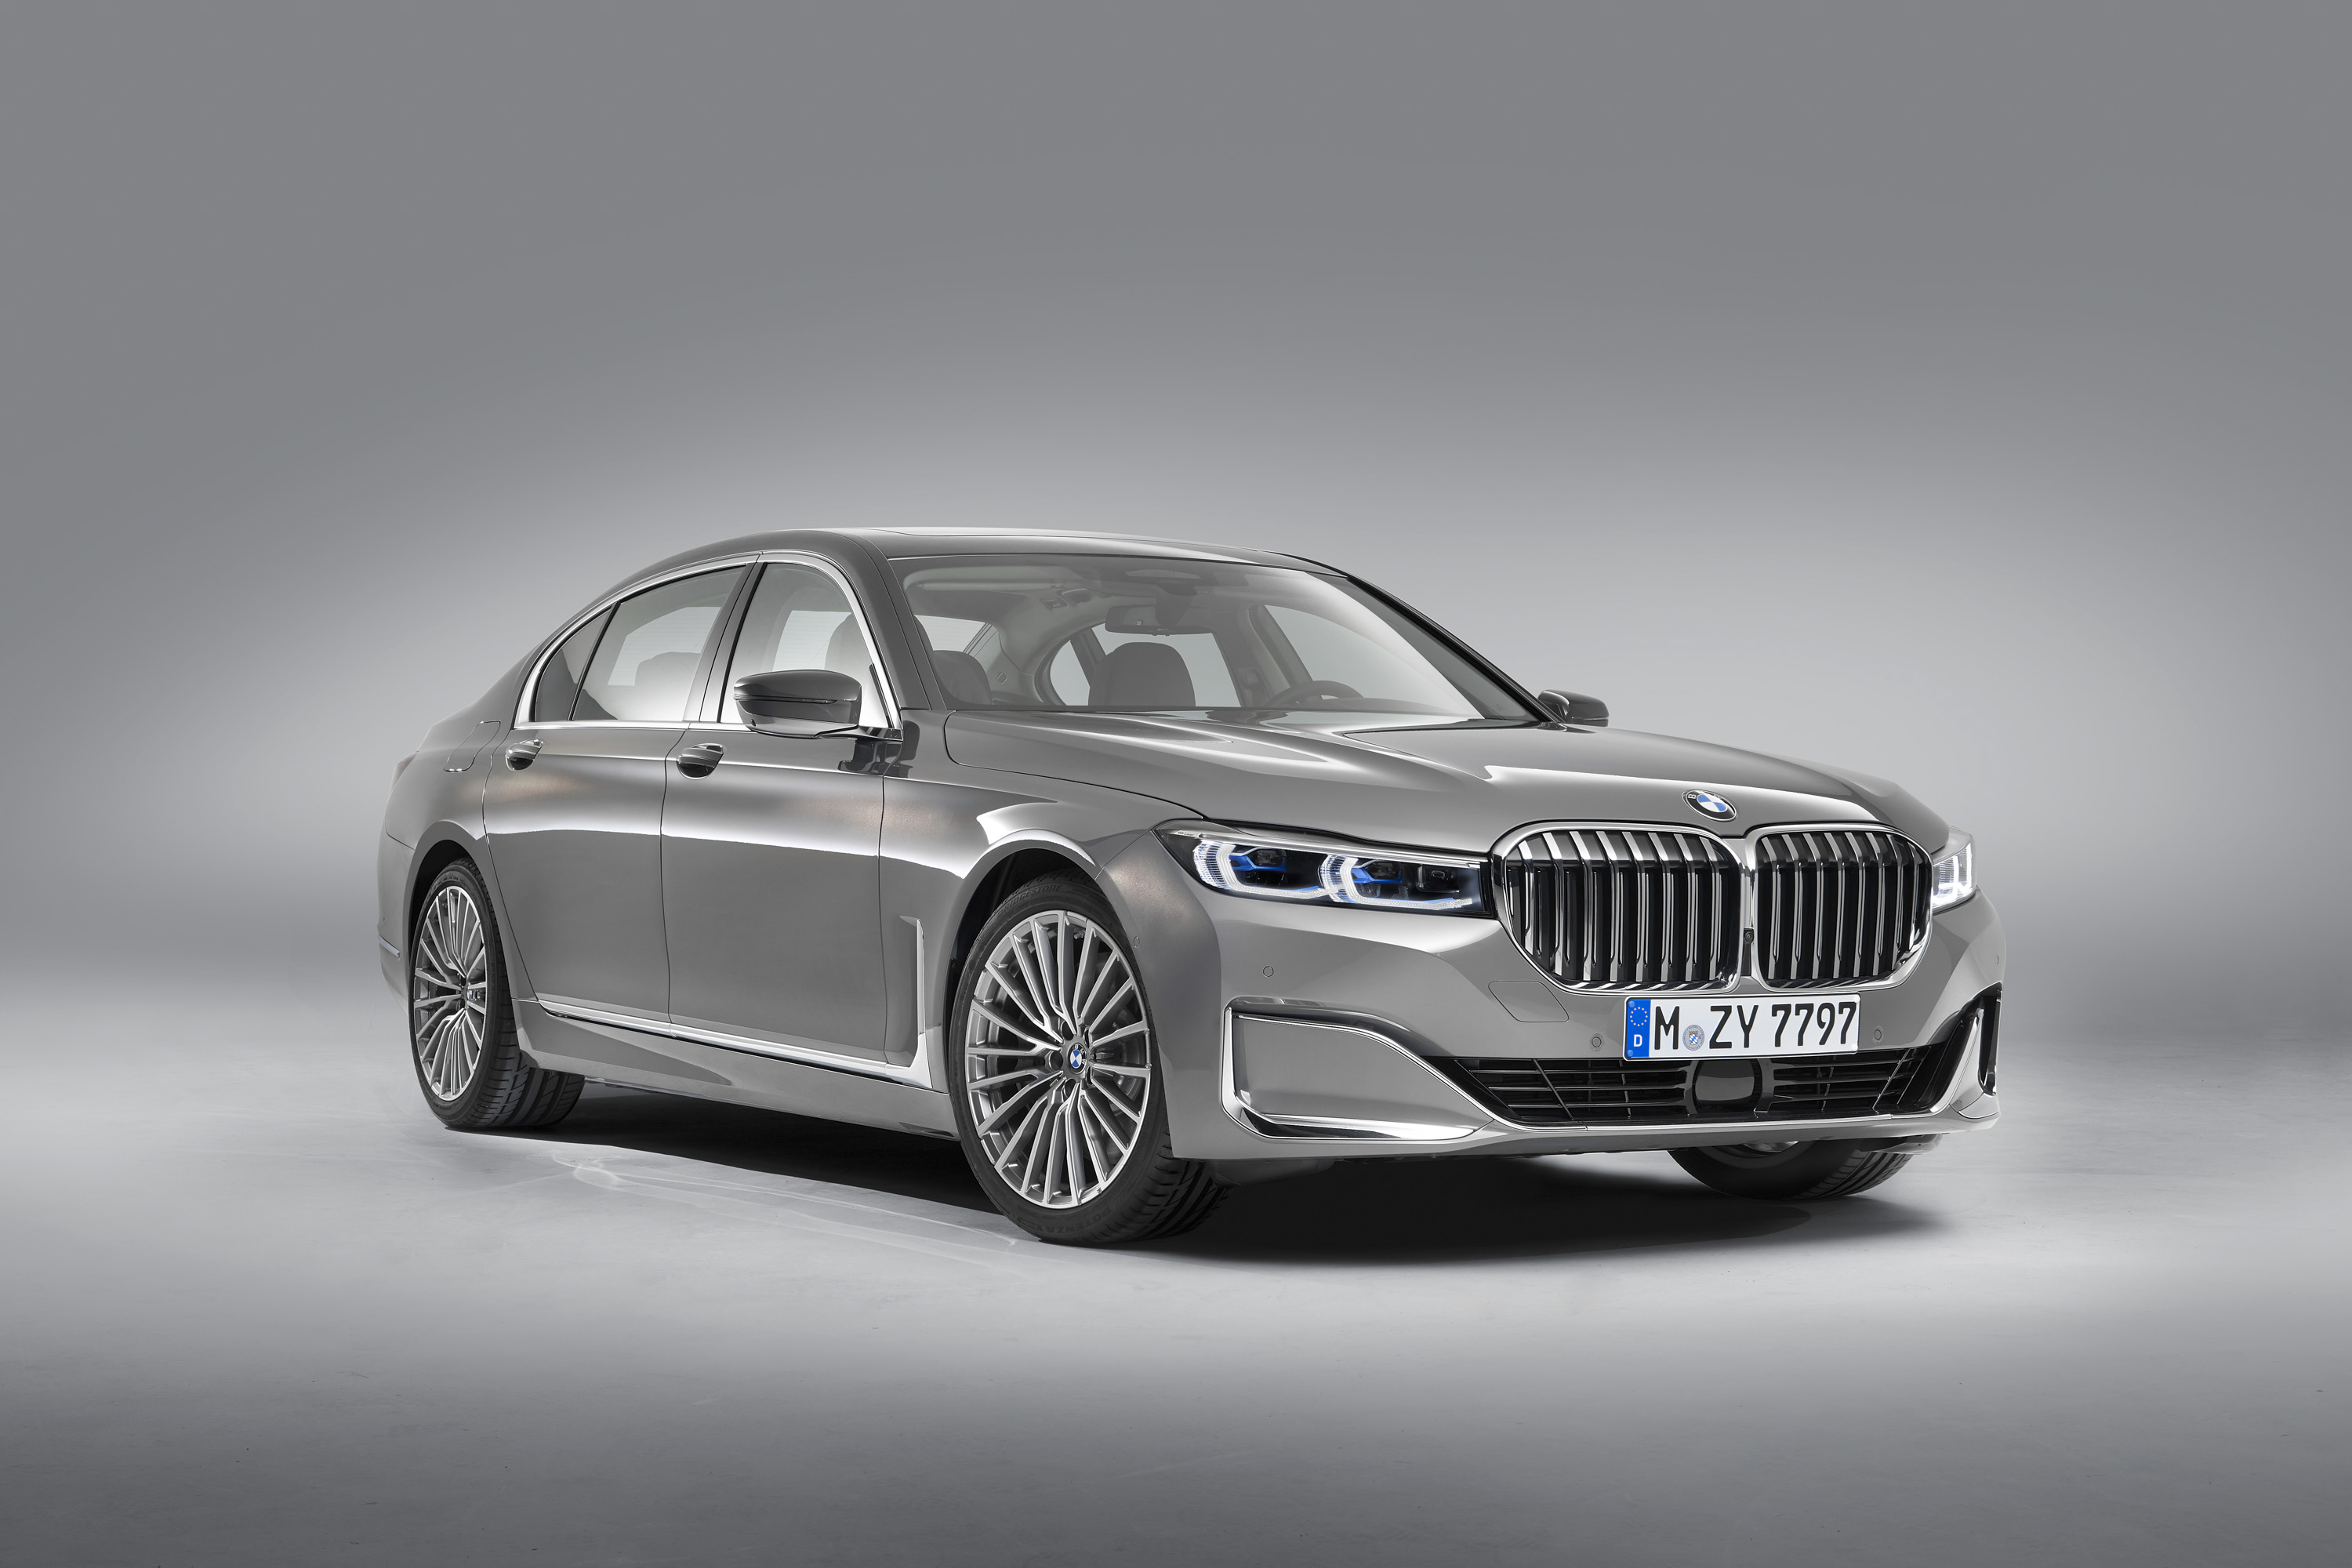 There S More To The 2020 Bmw 7 Series Than That Massive Grille Top